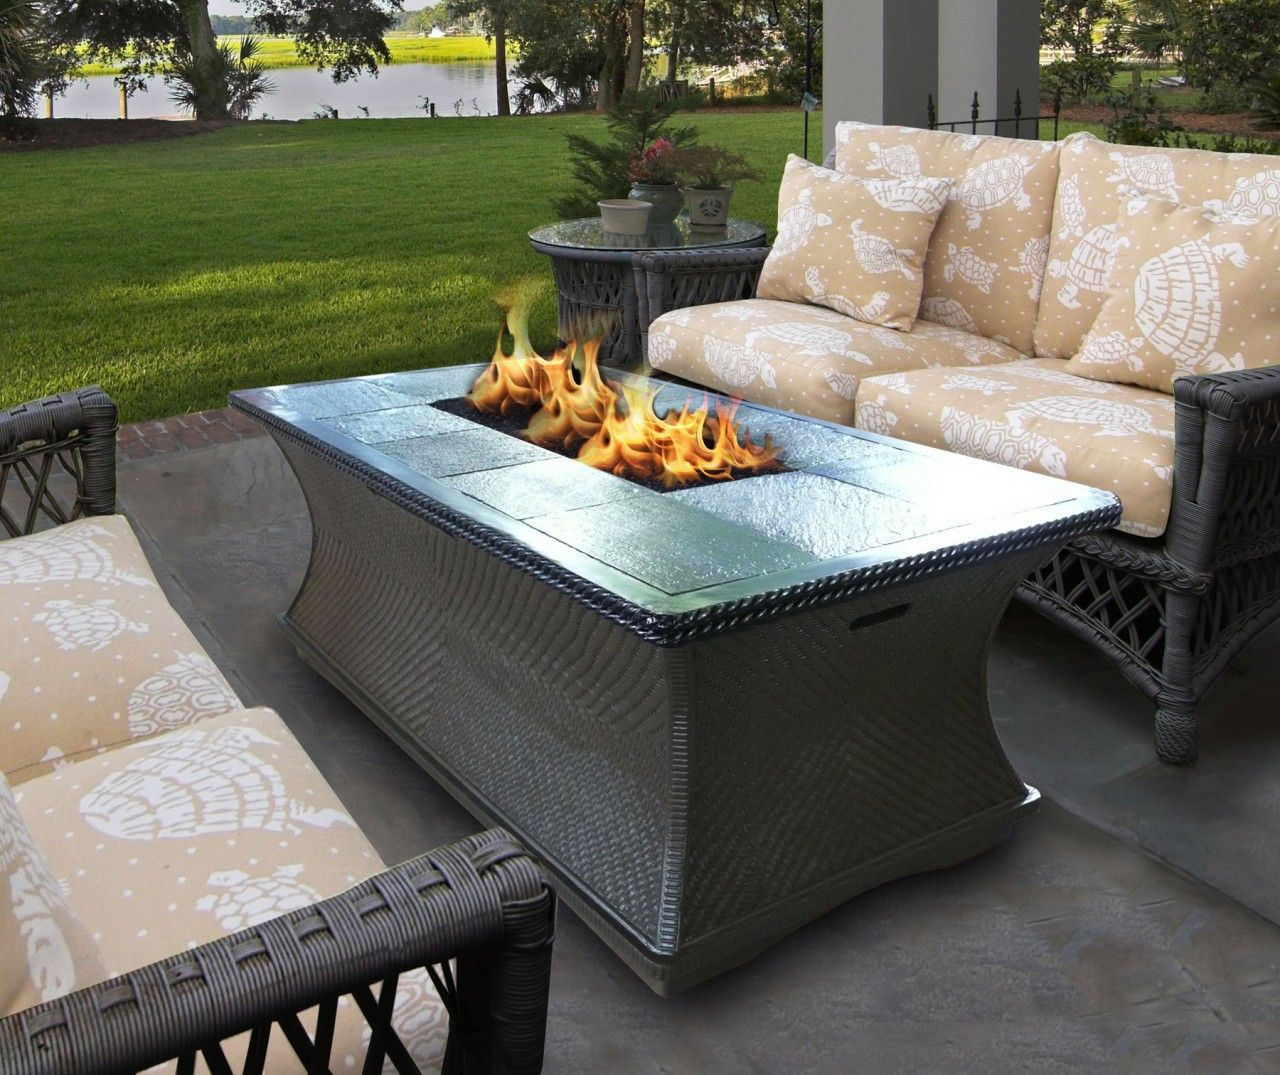 California Outdoor Concepts Monterey Firepit Coffee Table   Outdoor Fire  Pits U0026 Fireplaces   California Outdoor Concepts   Home And Patio Decor  Center